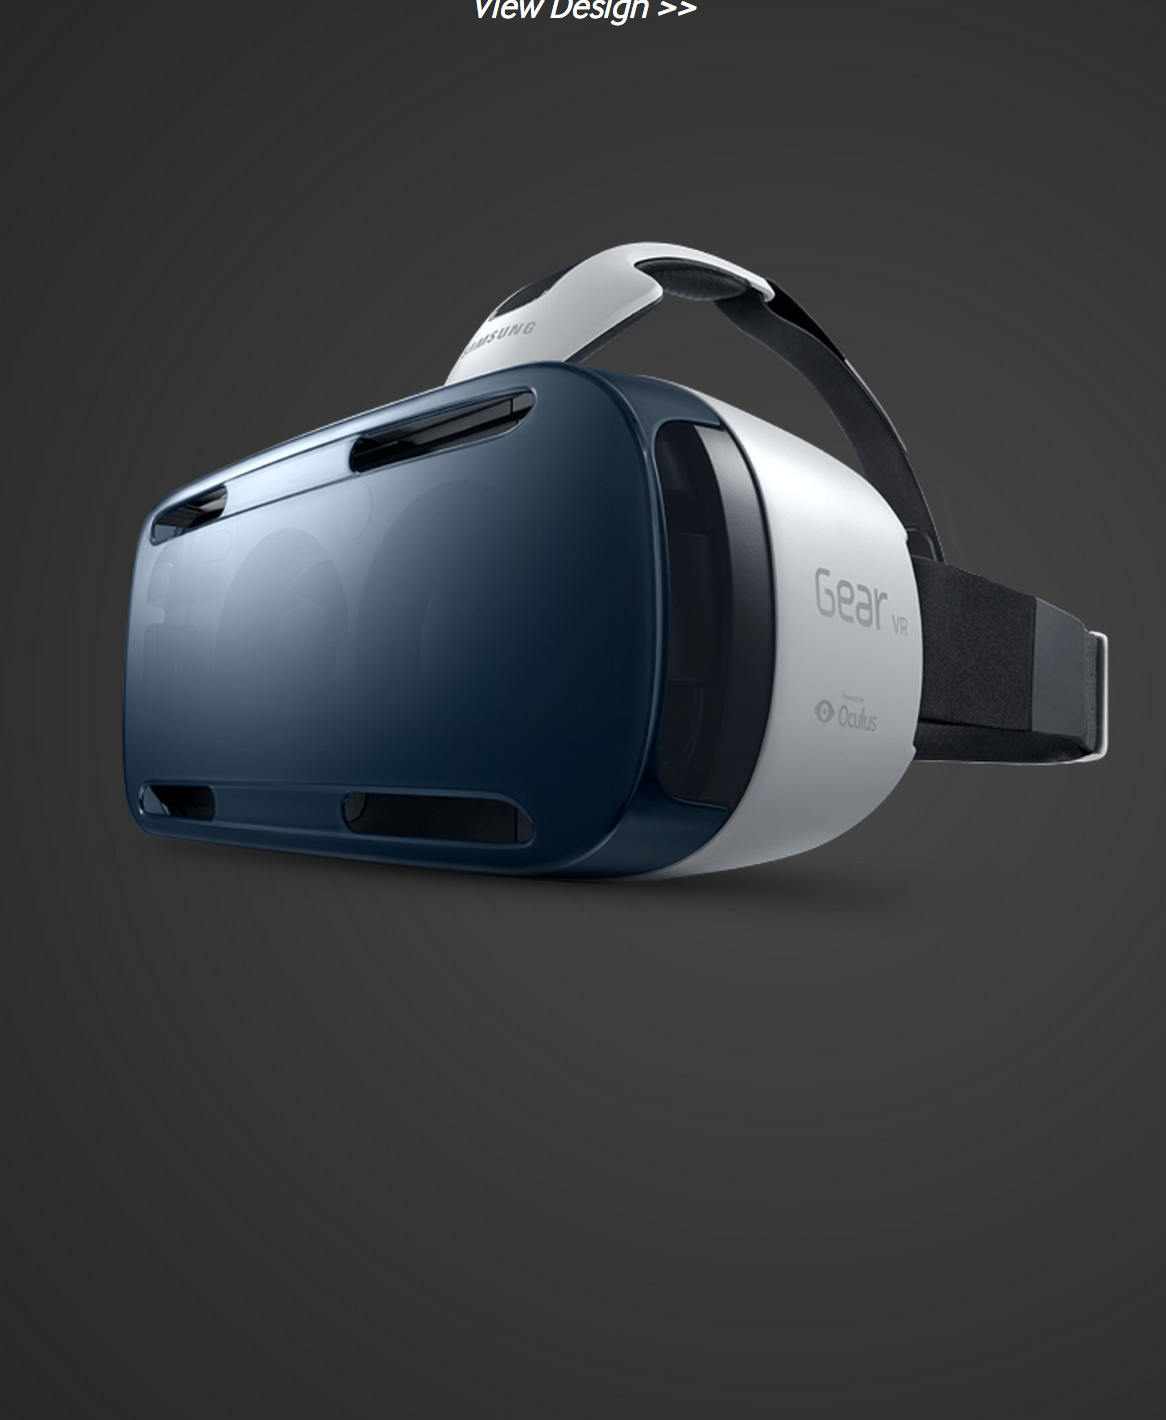 Samsung and Oculus reveal Gear VR: Virtual Reality with a Galaxy Note